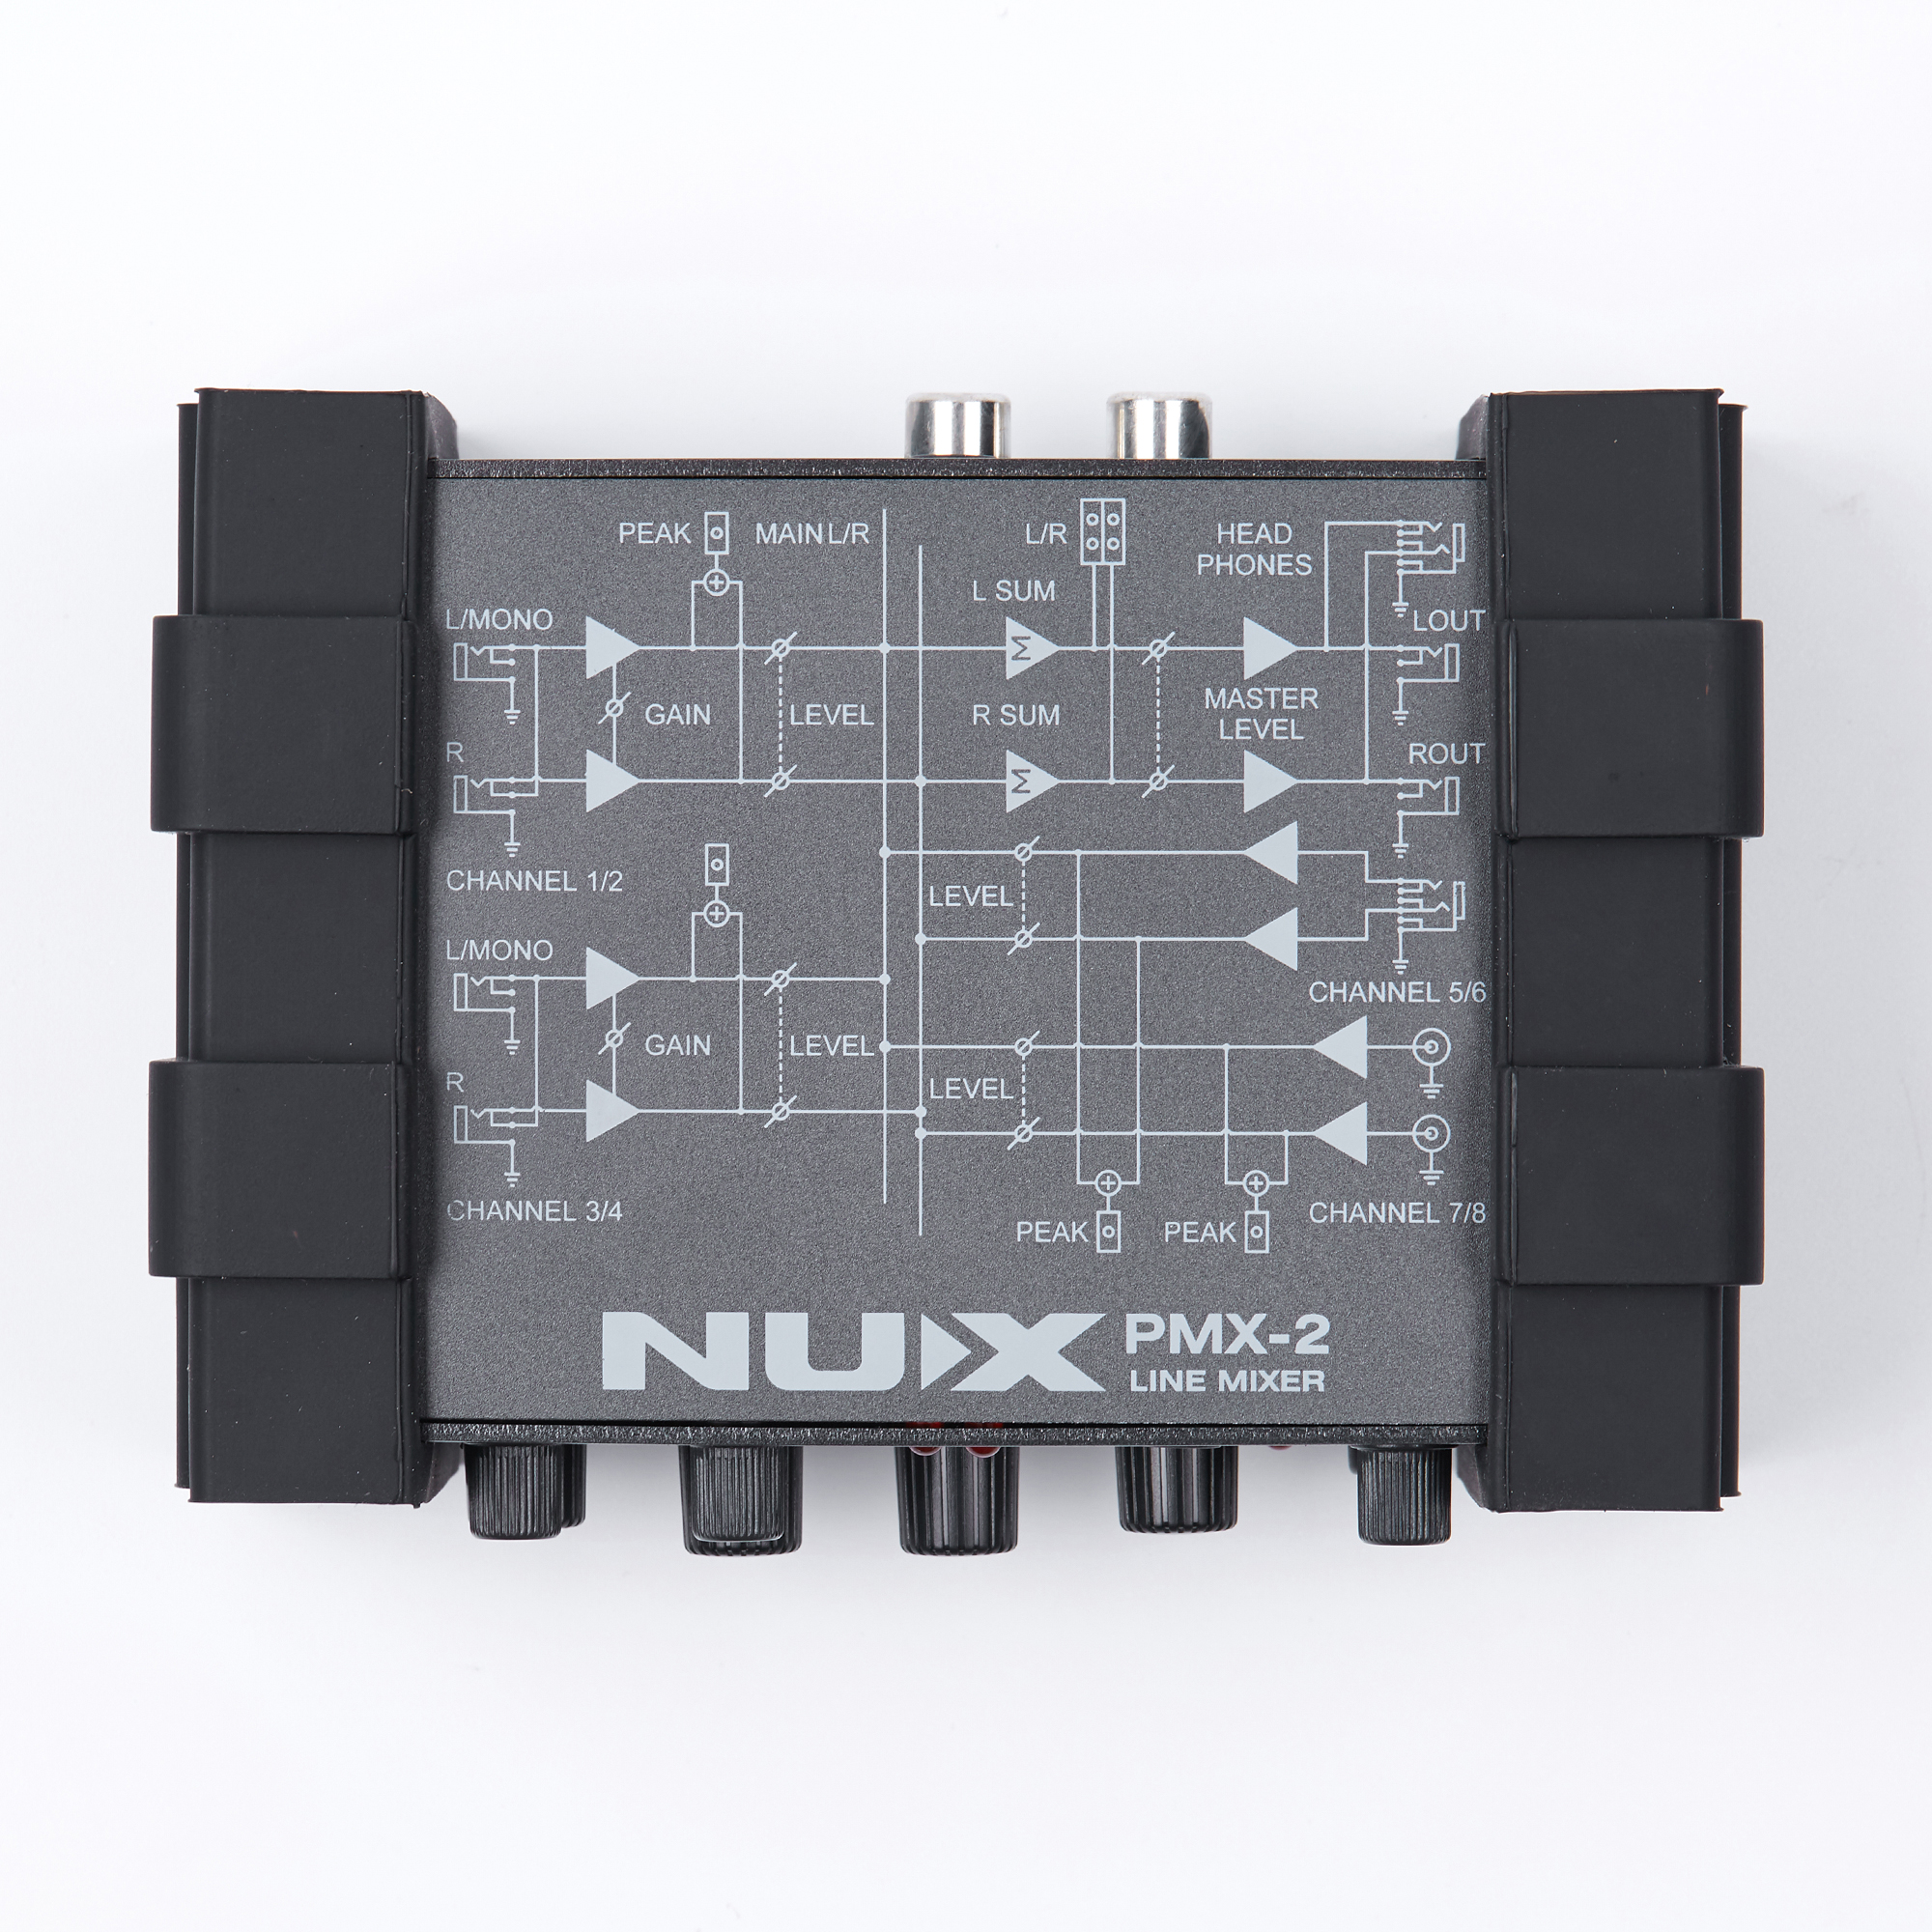 Gain Control 8 Inputs and 2 Outputs NUX PMX-2 Multi-Channel Mini Mixer 30 Musical Instruments Accessories for Guitar Bass Player runail однофазный uv гель белый 15 г